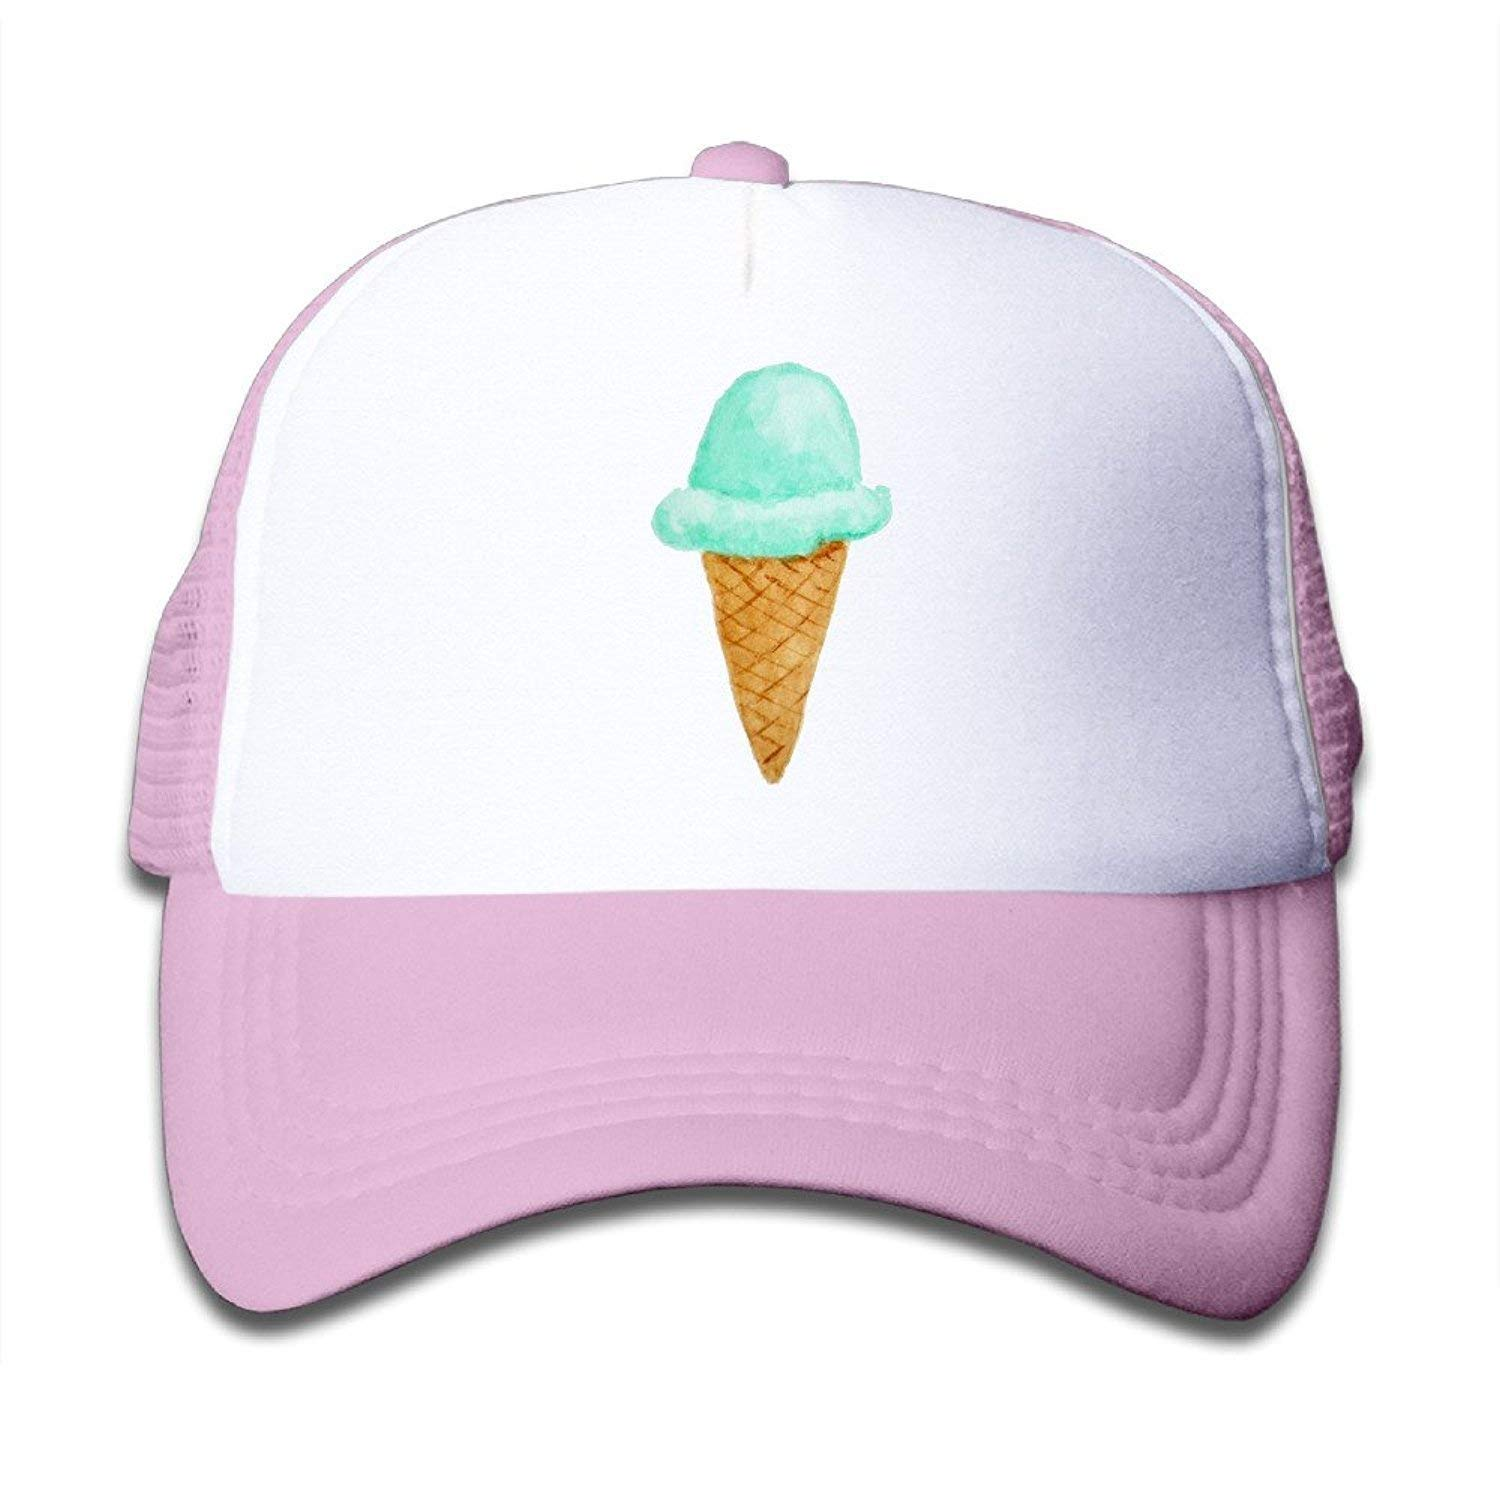 983a3369706 Get Quotations · Cute Kids Ice Cream Cone Watercolor Cute Adjustable  Snapback Hats Mesh Baseball Hat Unisex Cap